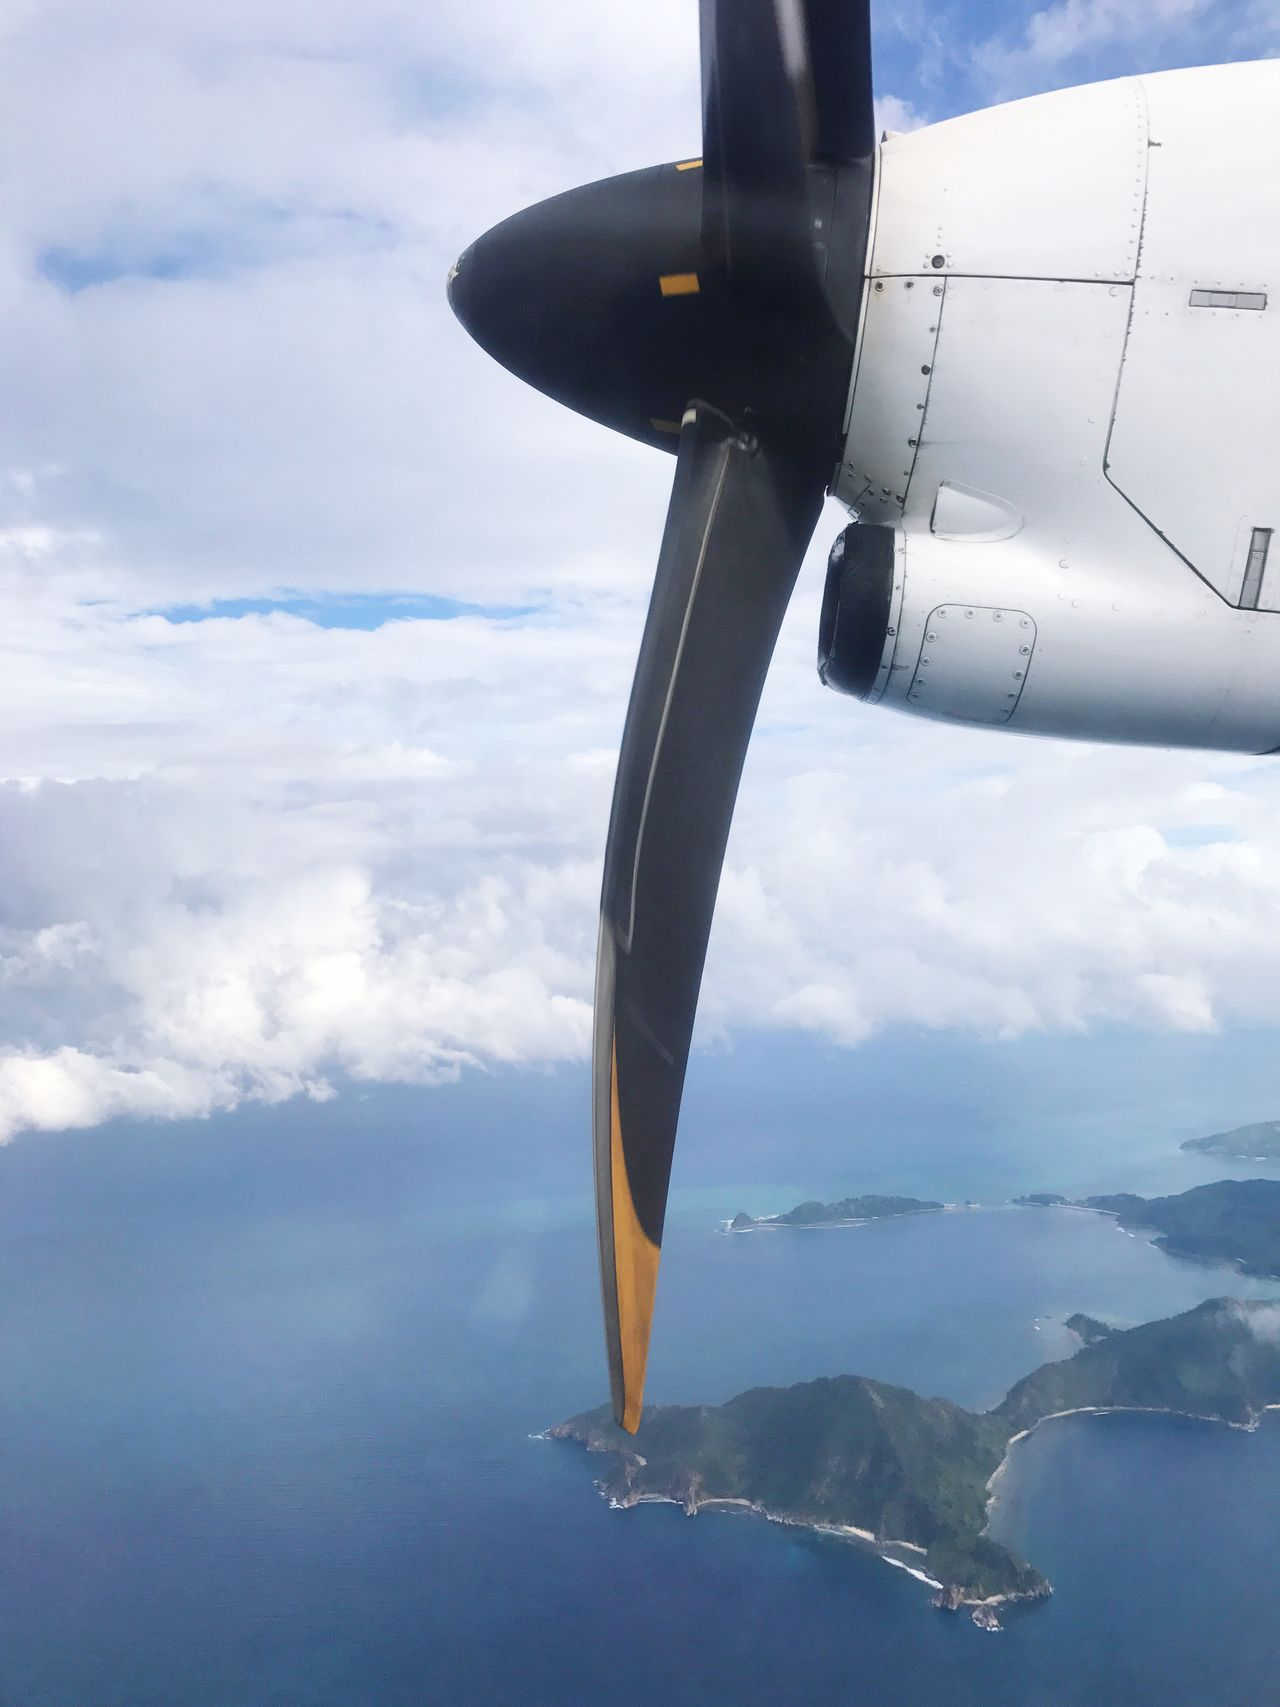 Flying in a super small plane. Airplane Flying Cloud - Sky Sky Mode Of Transport Air Vehicle Mid-air Aerial View Transportation Day Scenics Aircraft Wing Outdoors Sea Nature Airplane Wing Propeller Islands View Airplane Window Looking Down Tropical Vacation Engine